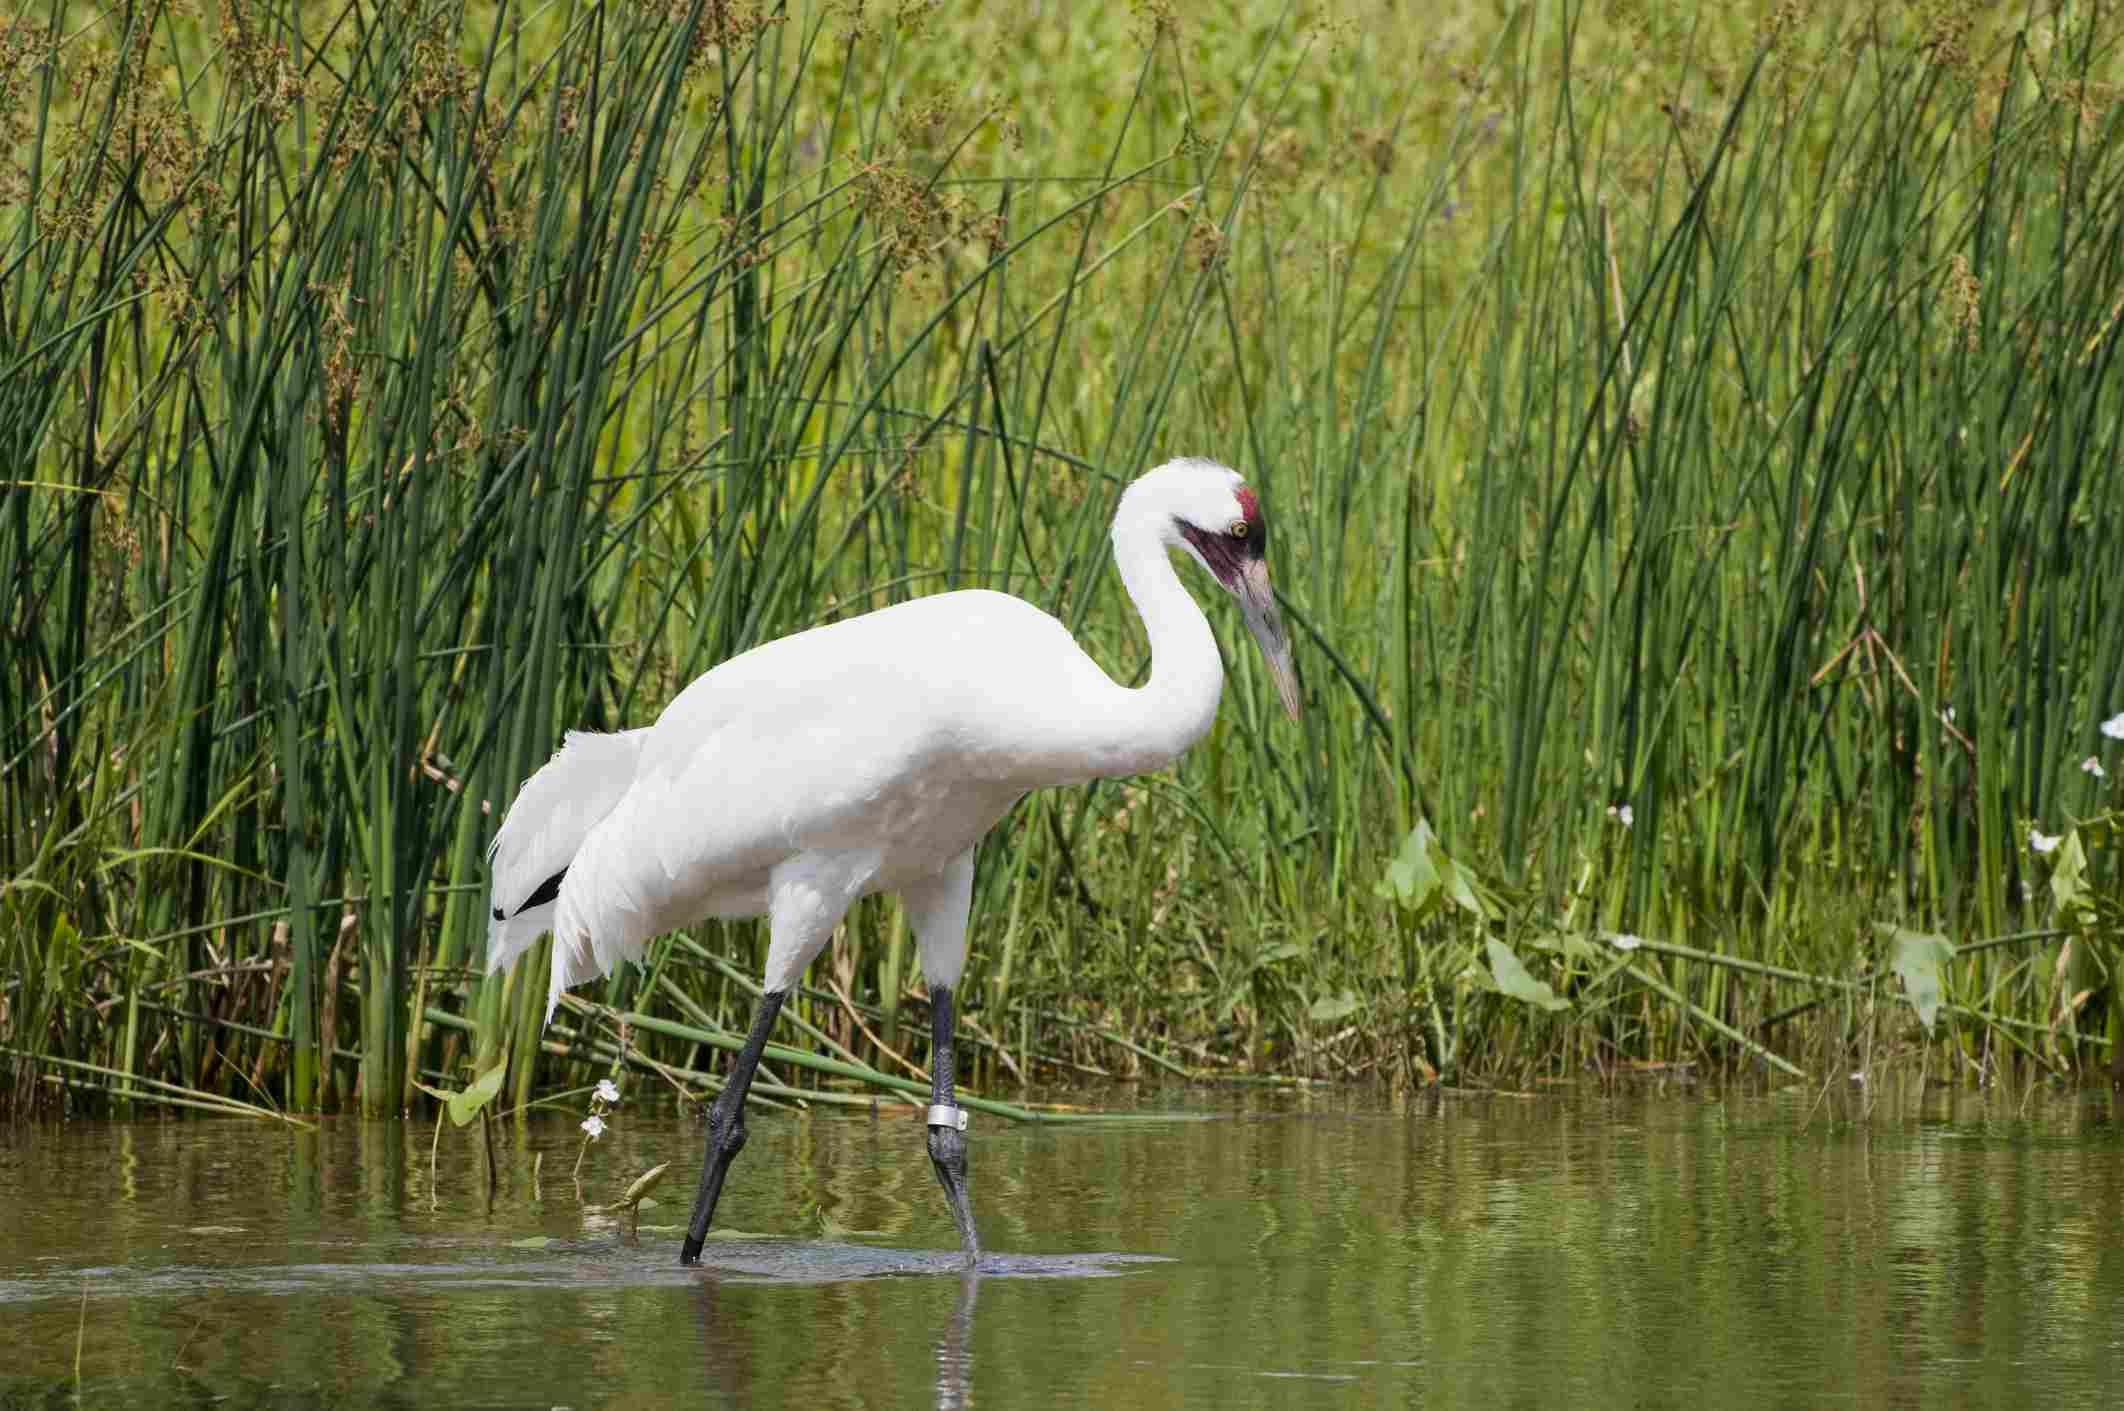 Whooping crane standing in a marsh